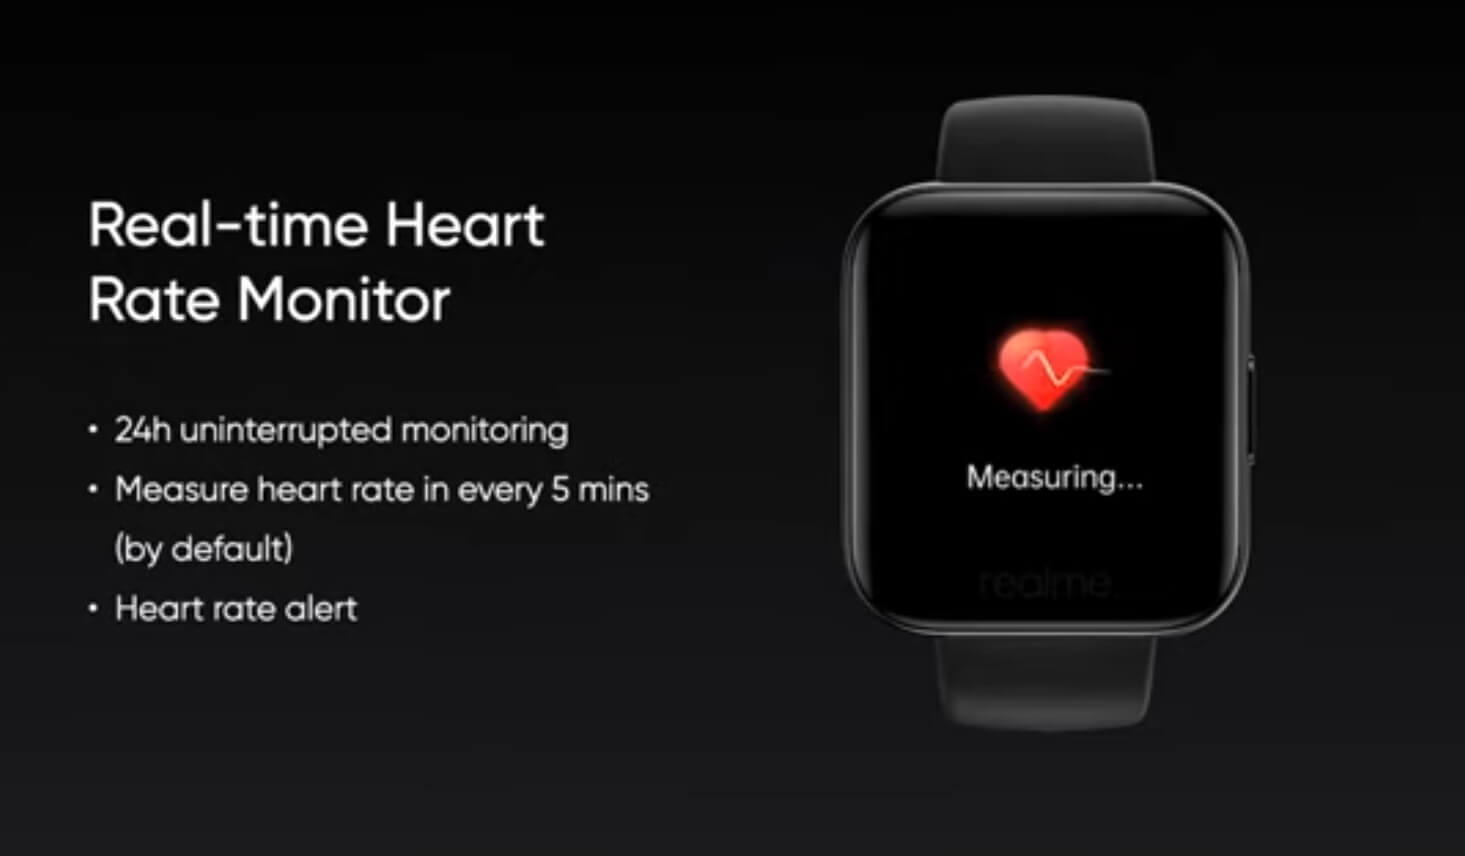 REALME-WATCH-HEART-RATE-MONITOR